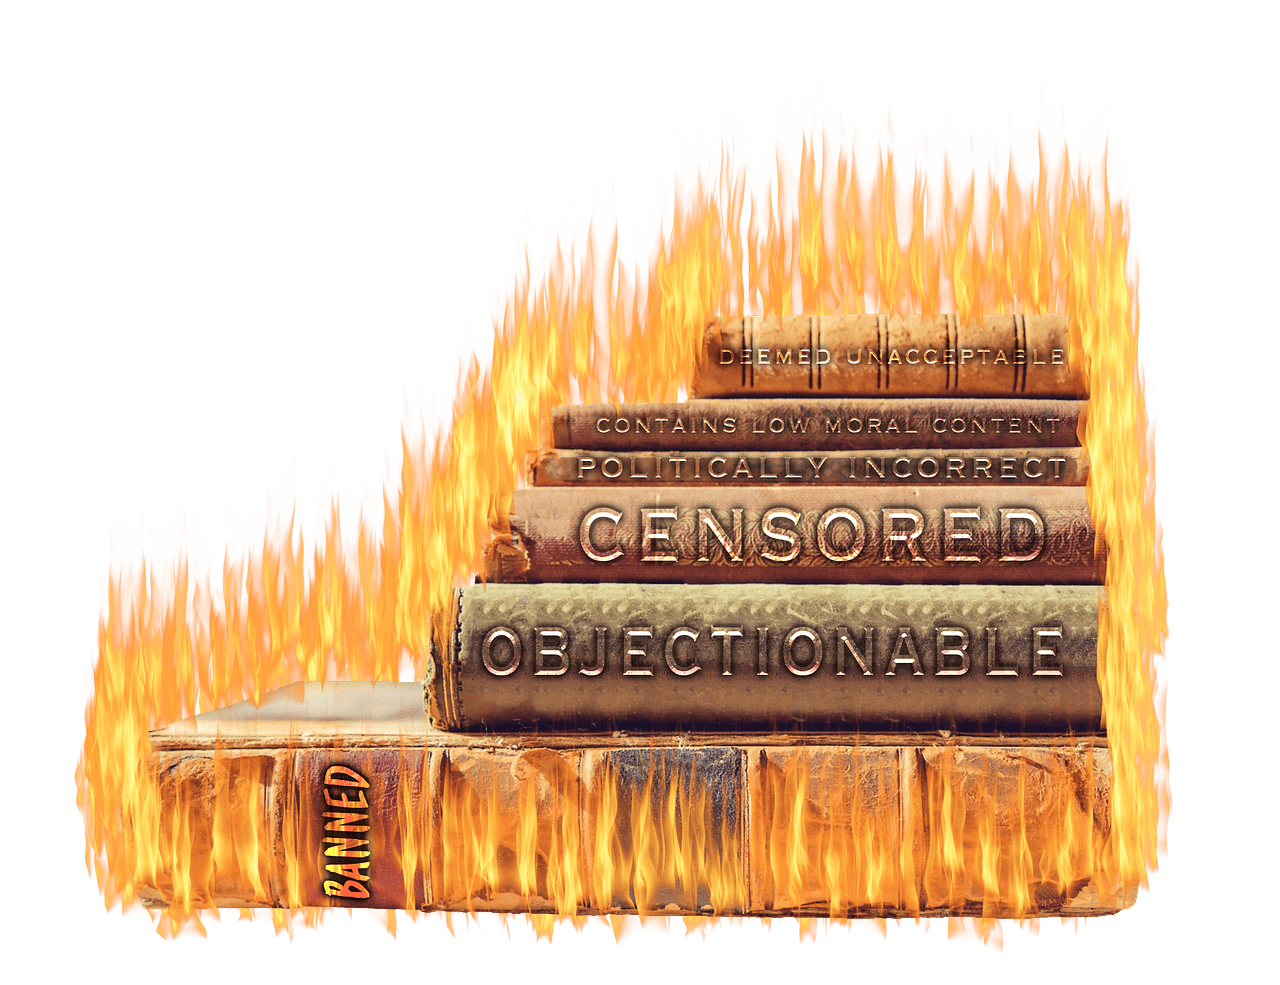 Banned Books Week Is From Sept. 22nd To The 28th – Here Are Related Resources